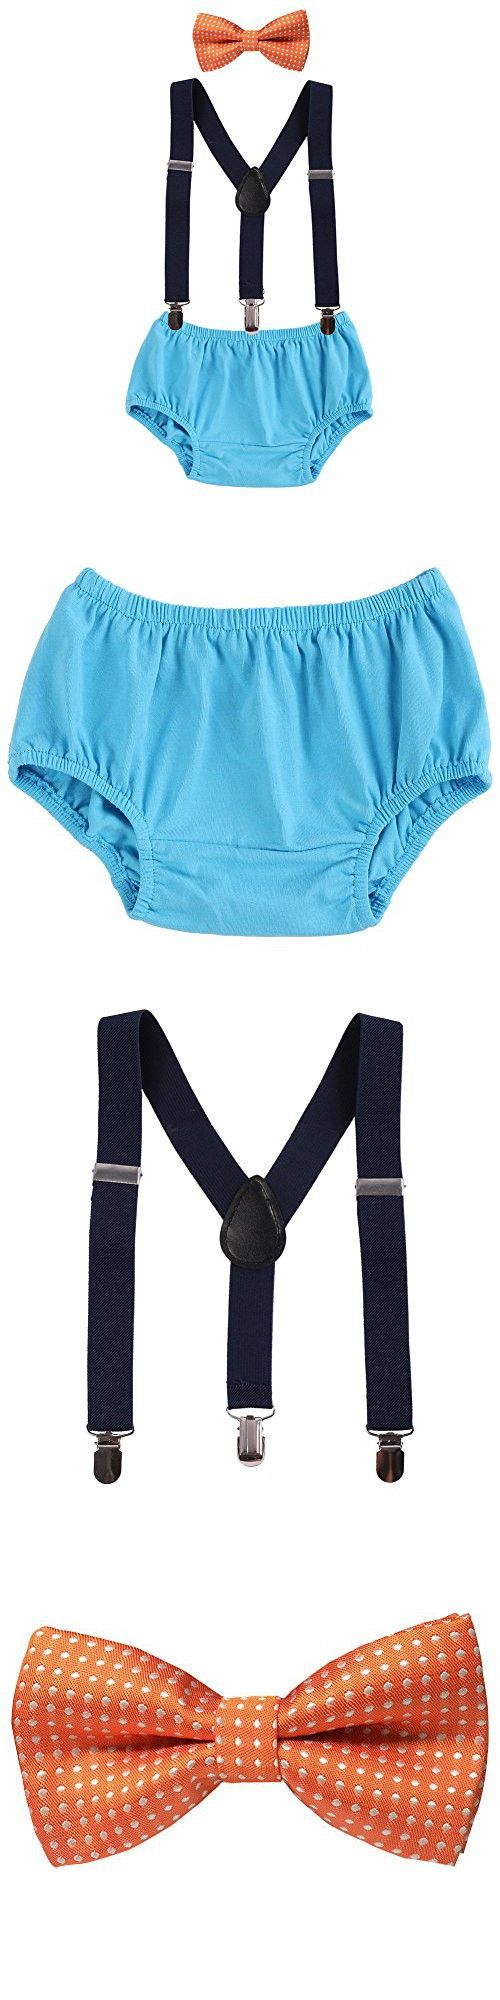 Baby Boys Adjustable Y Back Clip Suspenders Outfit First Birthday Bloomers Bowtie set Orange   Blue